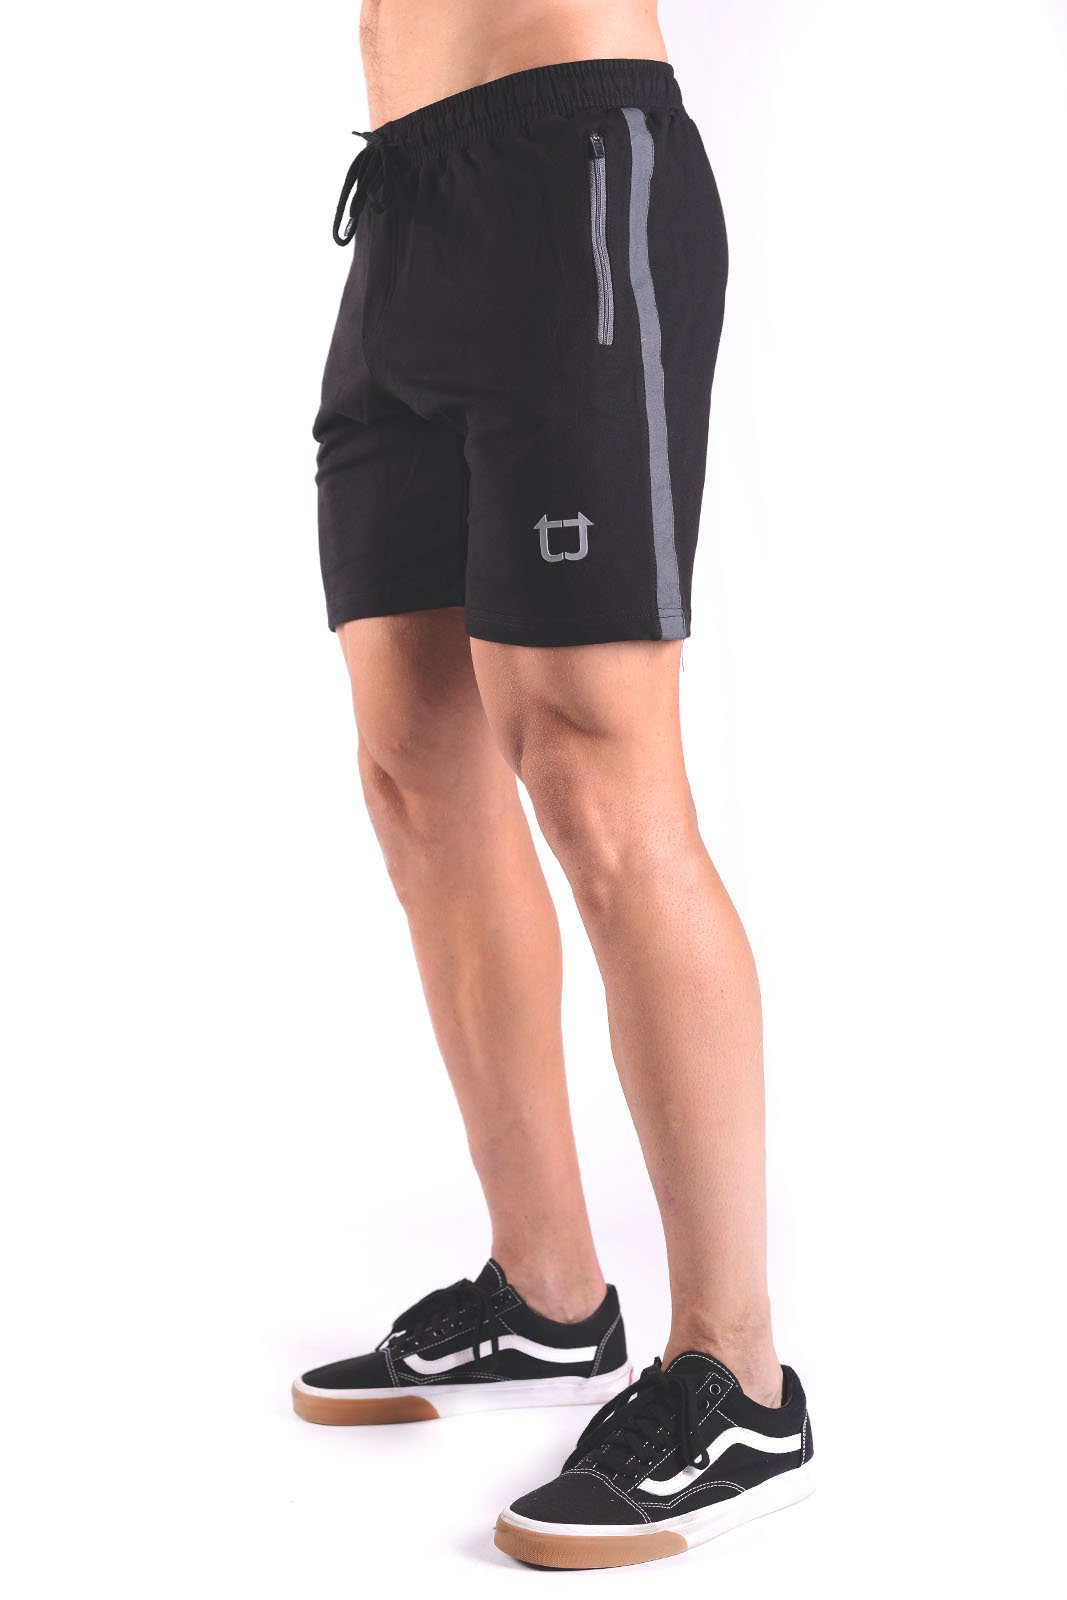 Rove Panel Sweat Shorts - Black